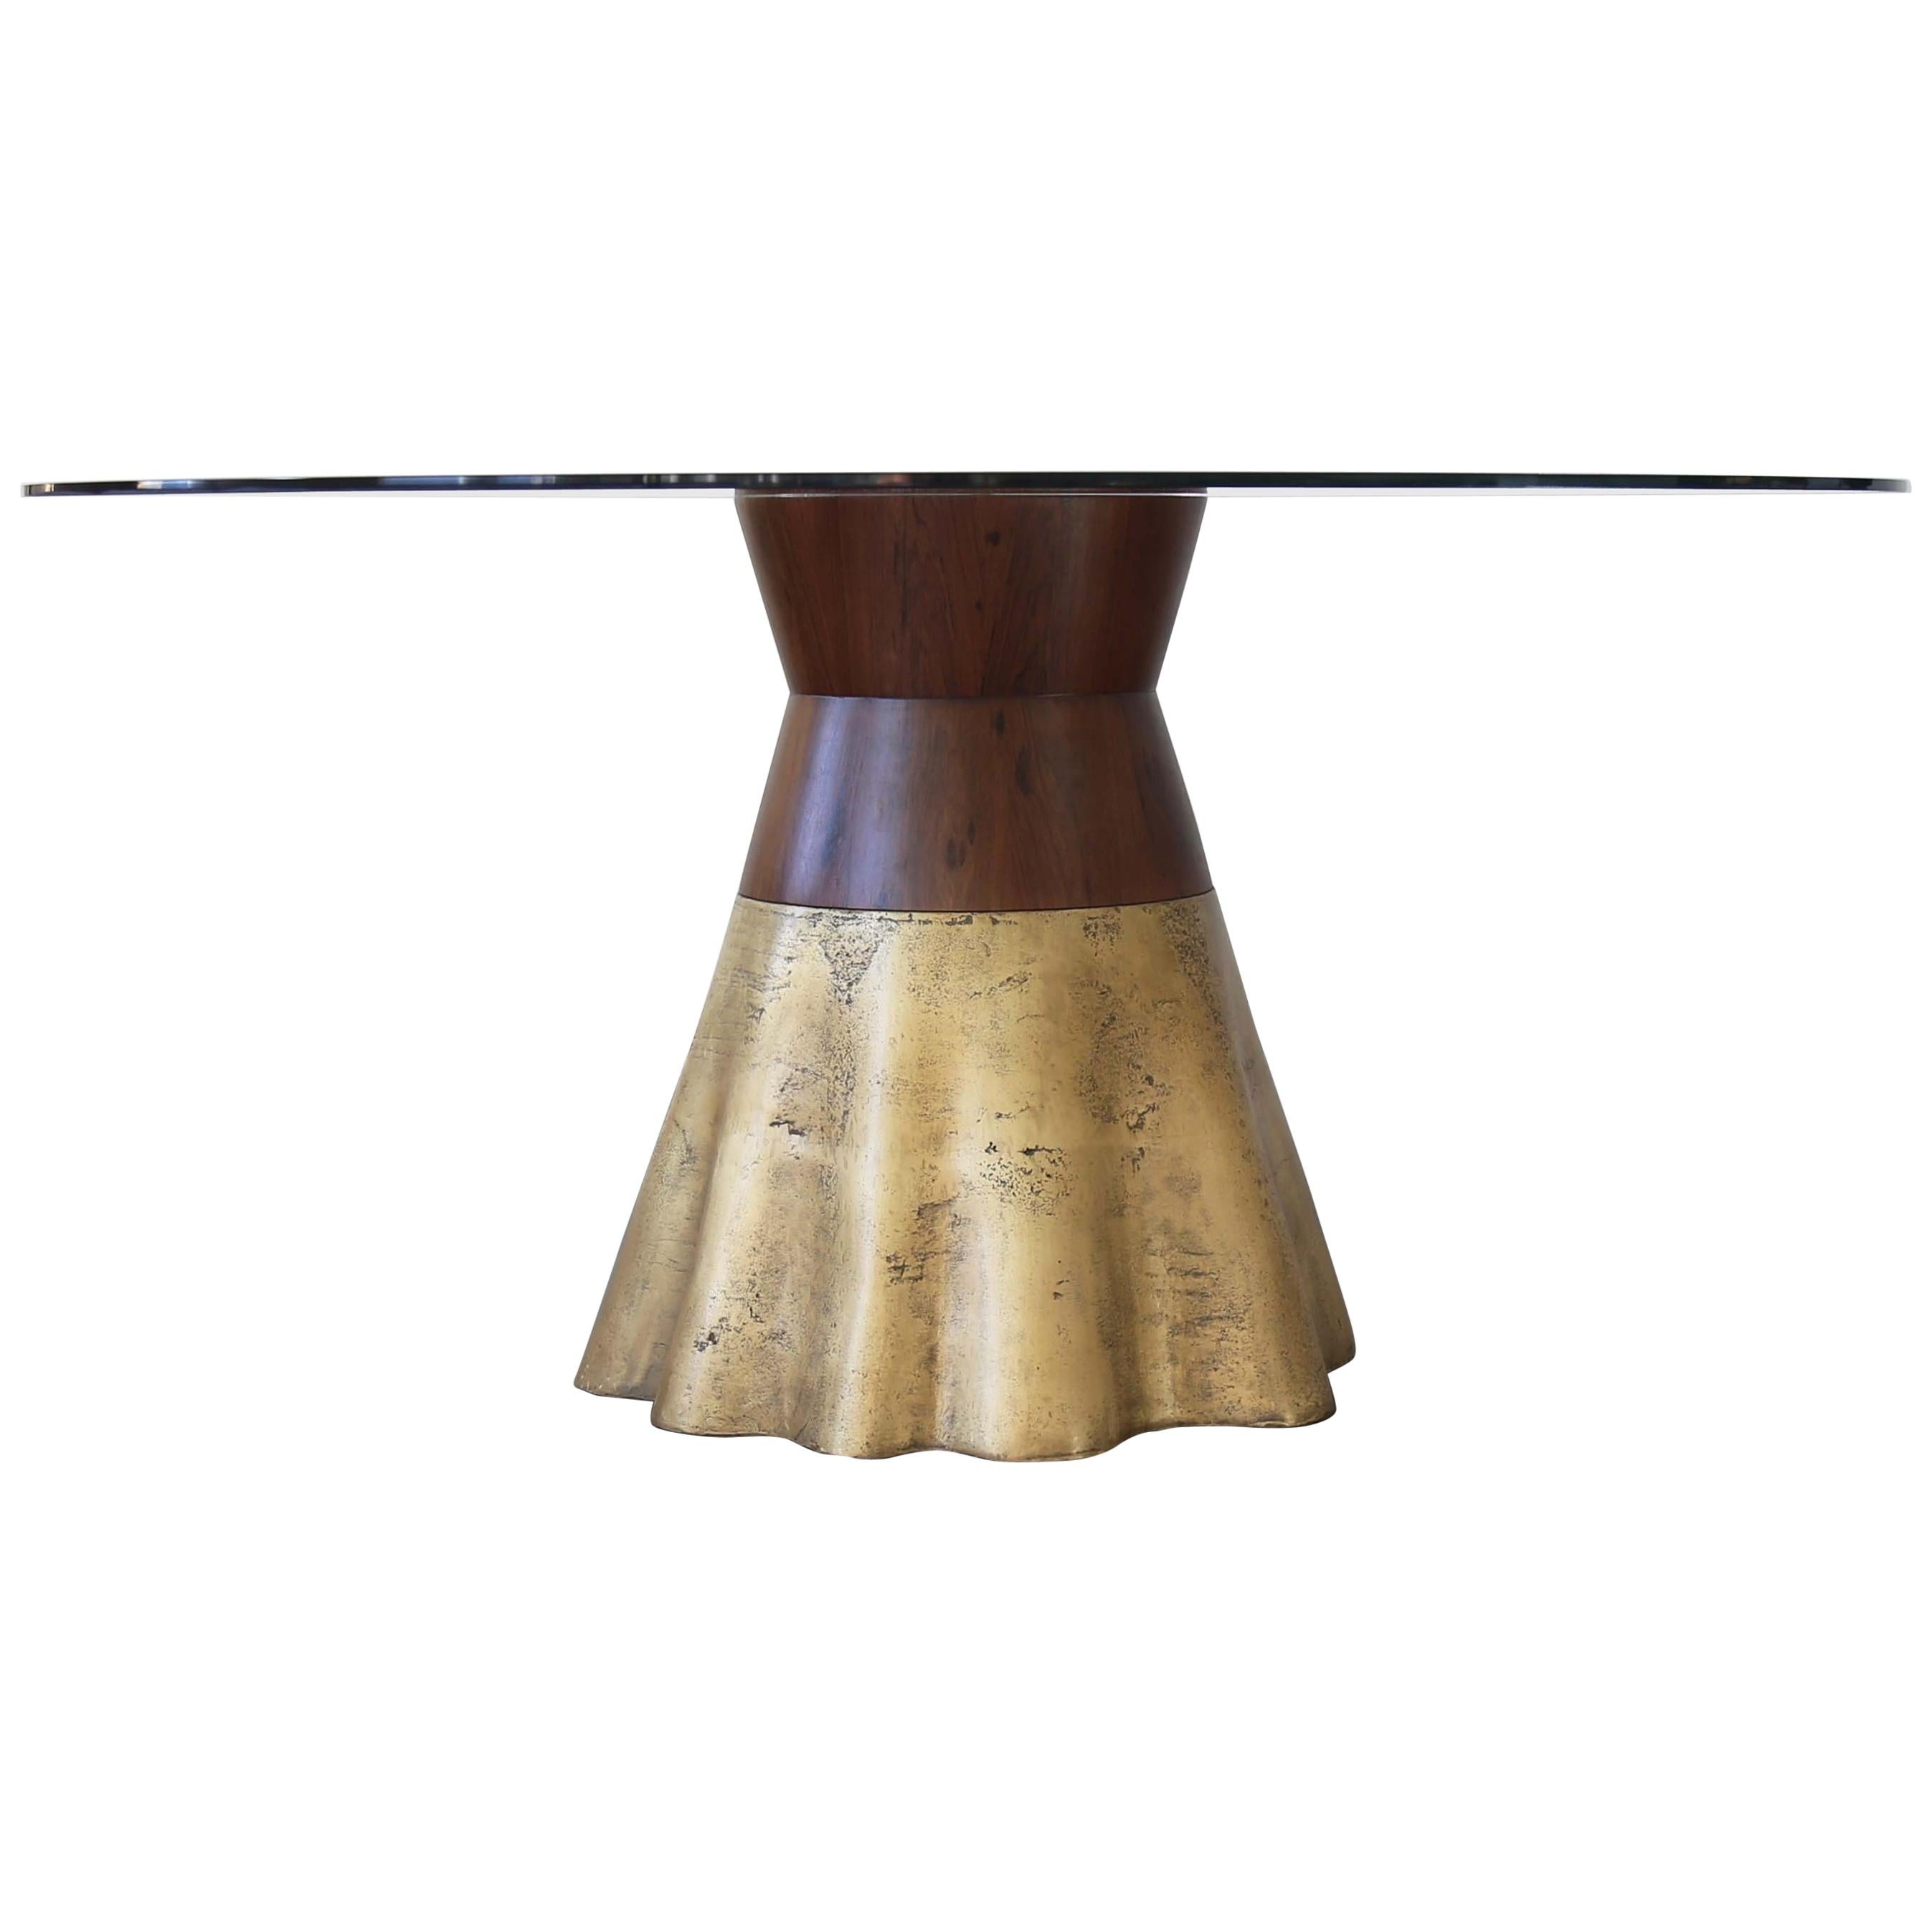 21st Century Round Dining Table in Cast Bronze from Costantini, Tavola 9